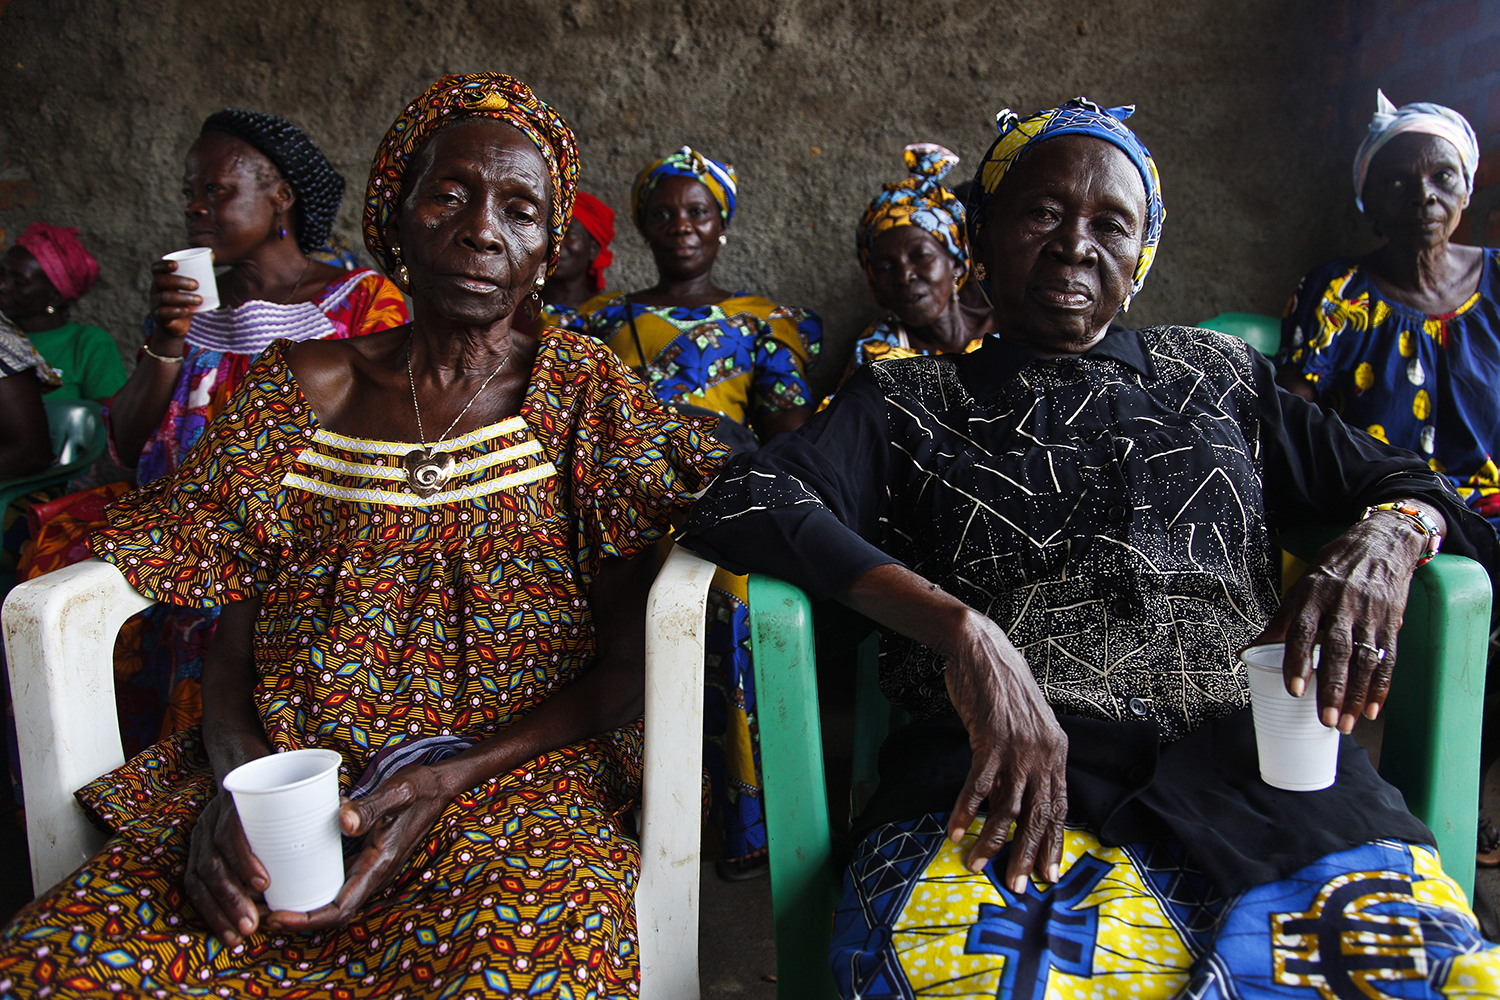 Members of a women's support group